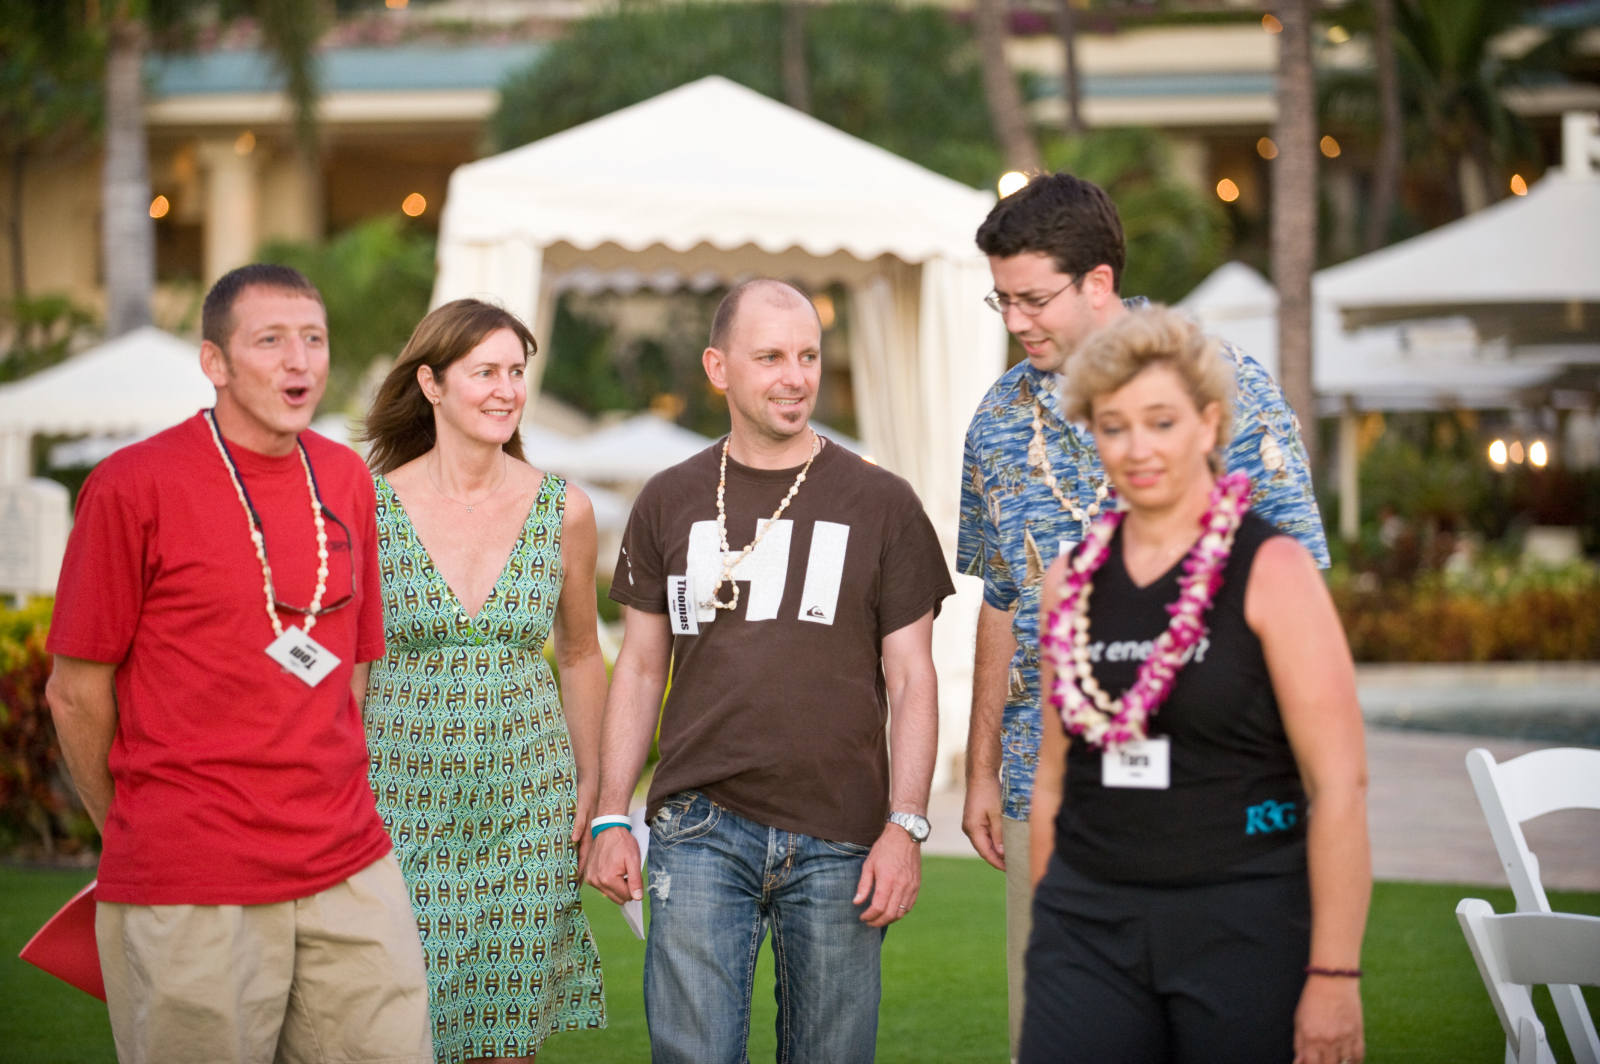 Tom Santilli (far left) enjoying a celebration with his business owner peers in Maui.  Seven years after first applying the S.C.A.L.E. Formula, Tom grew his company to sales of over $20 million and transitioned to own his business passively.